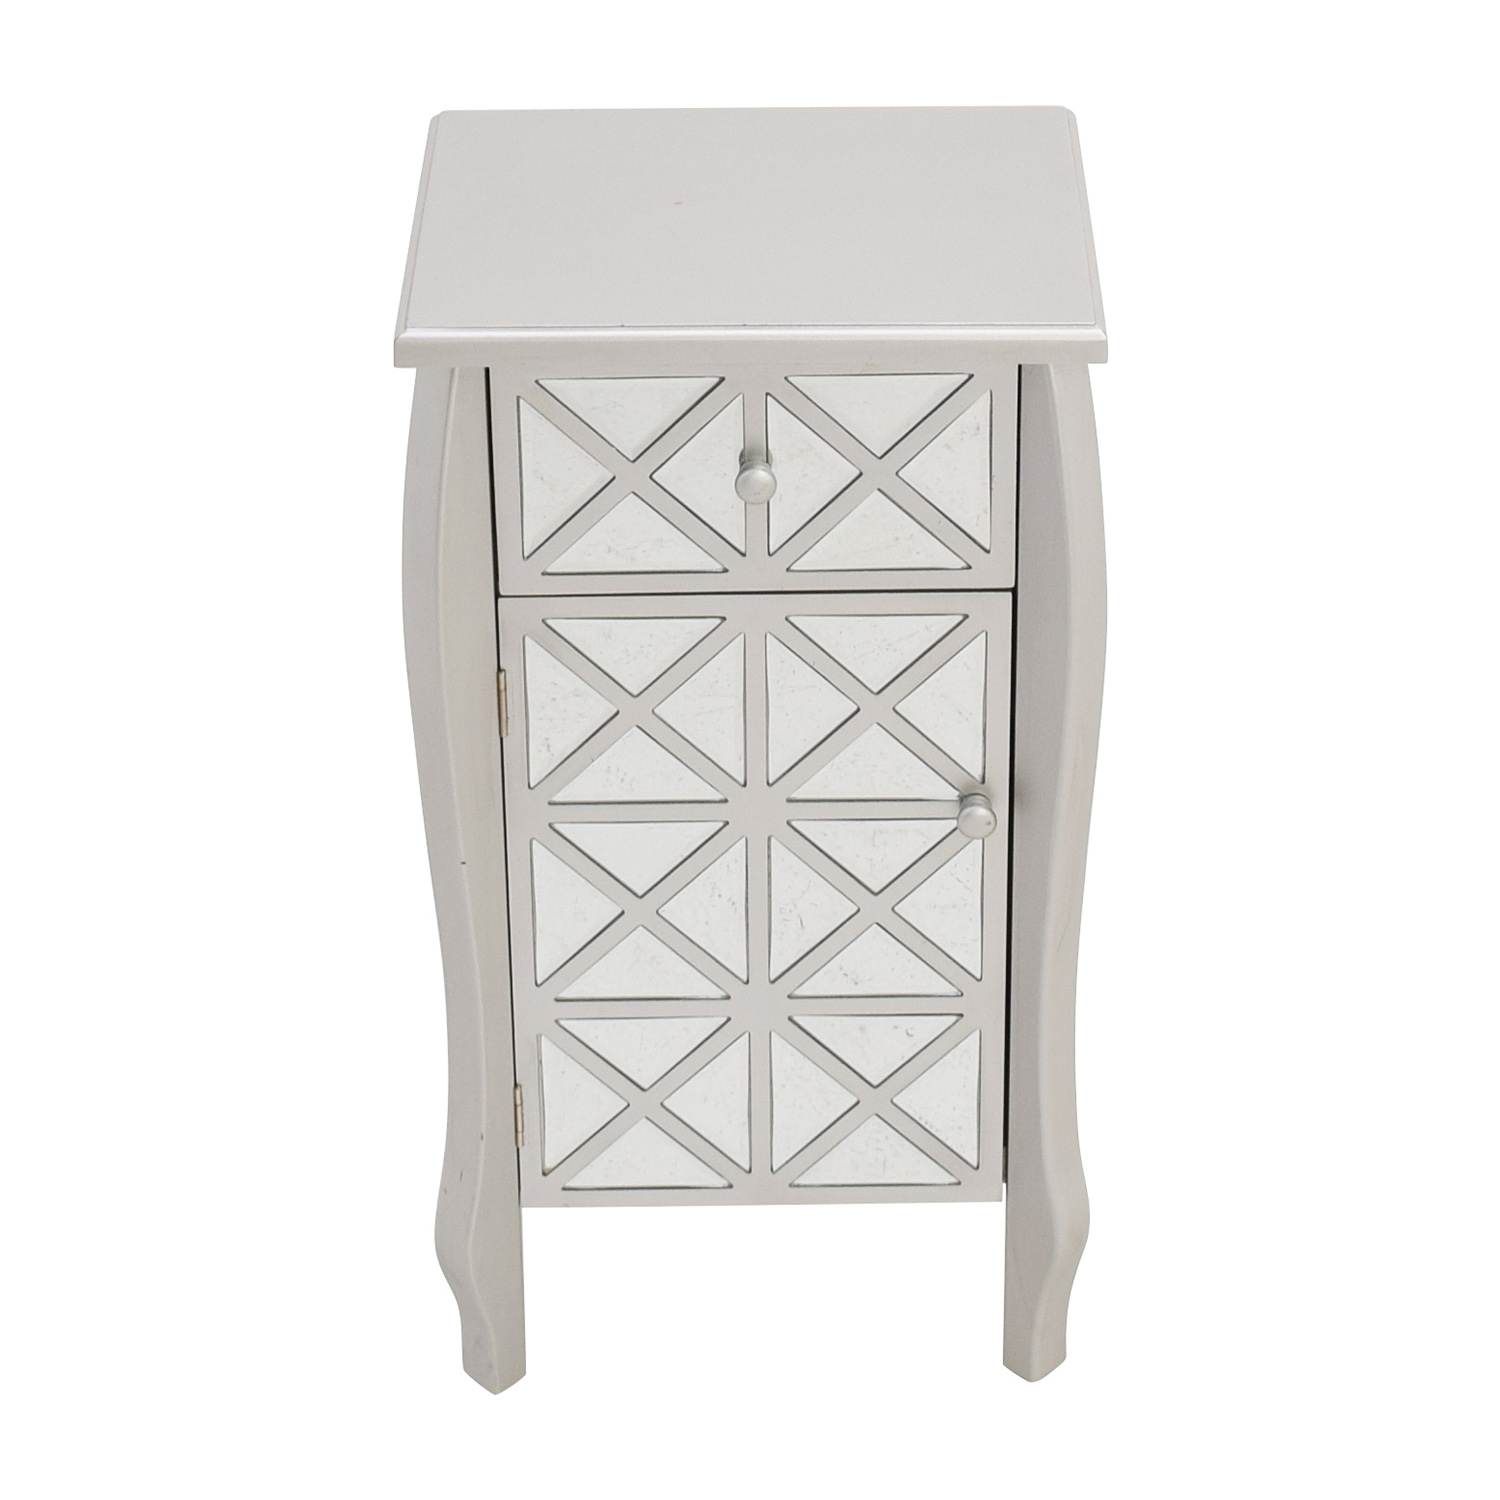 Mirrored Silver End Table